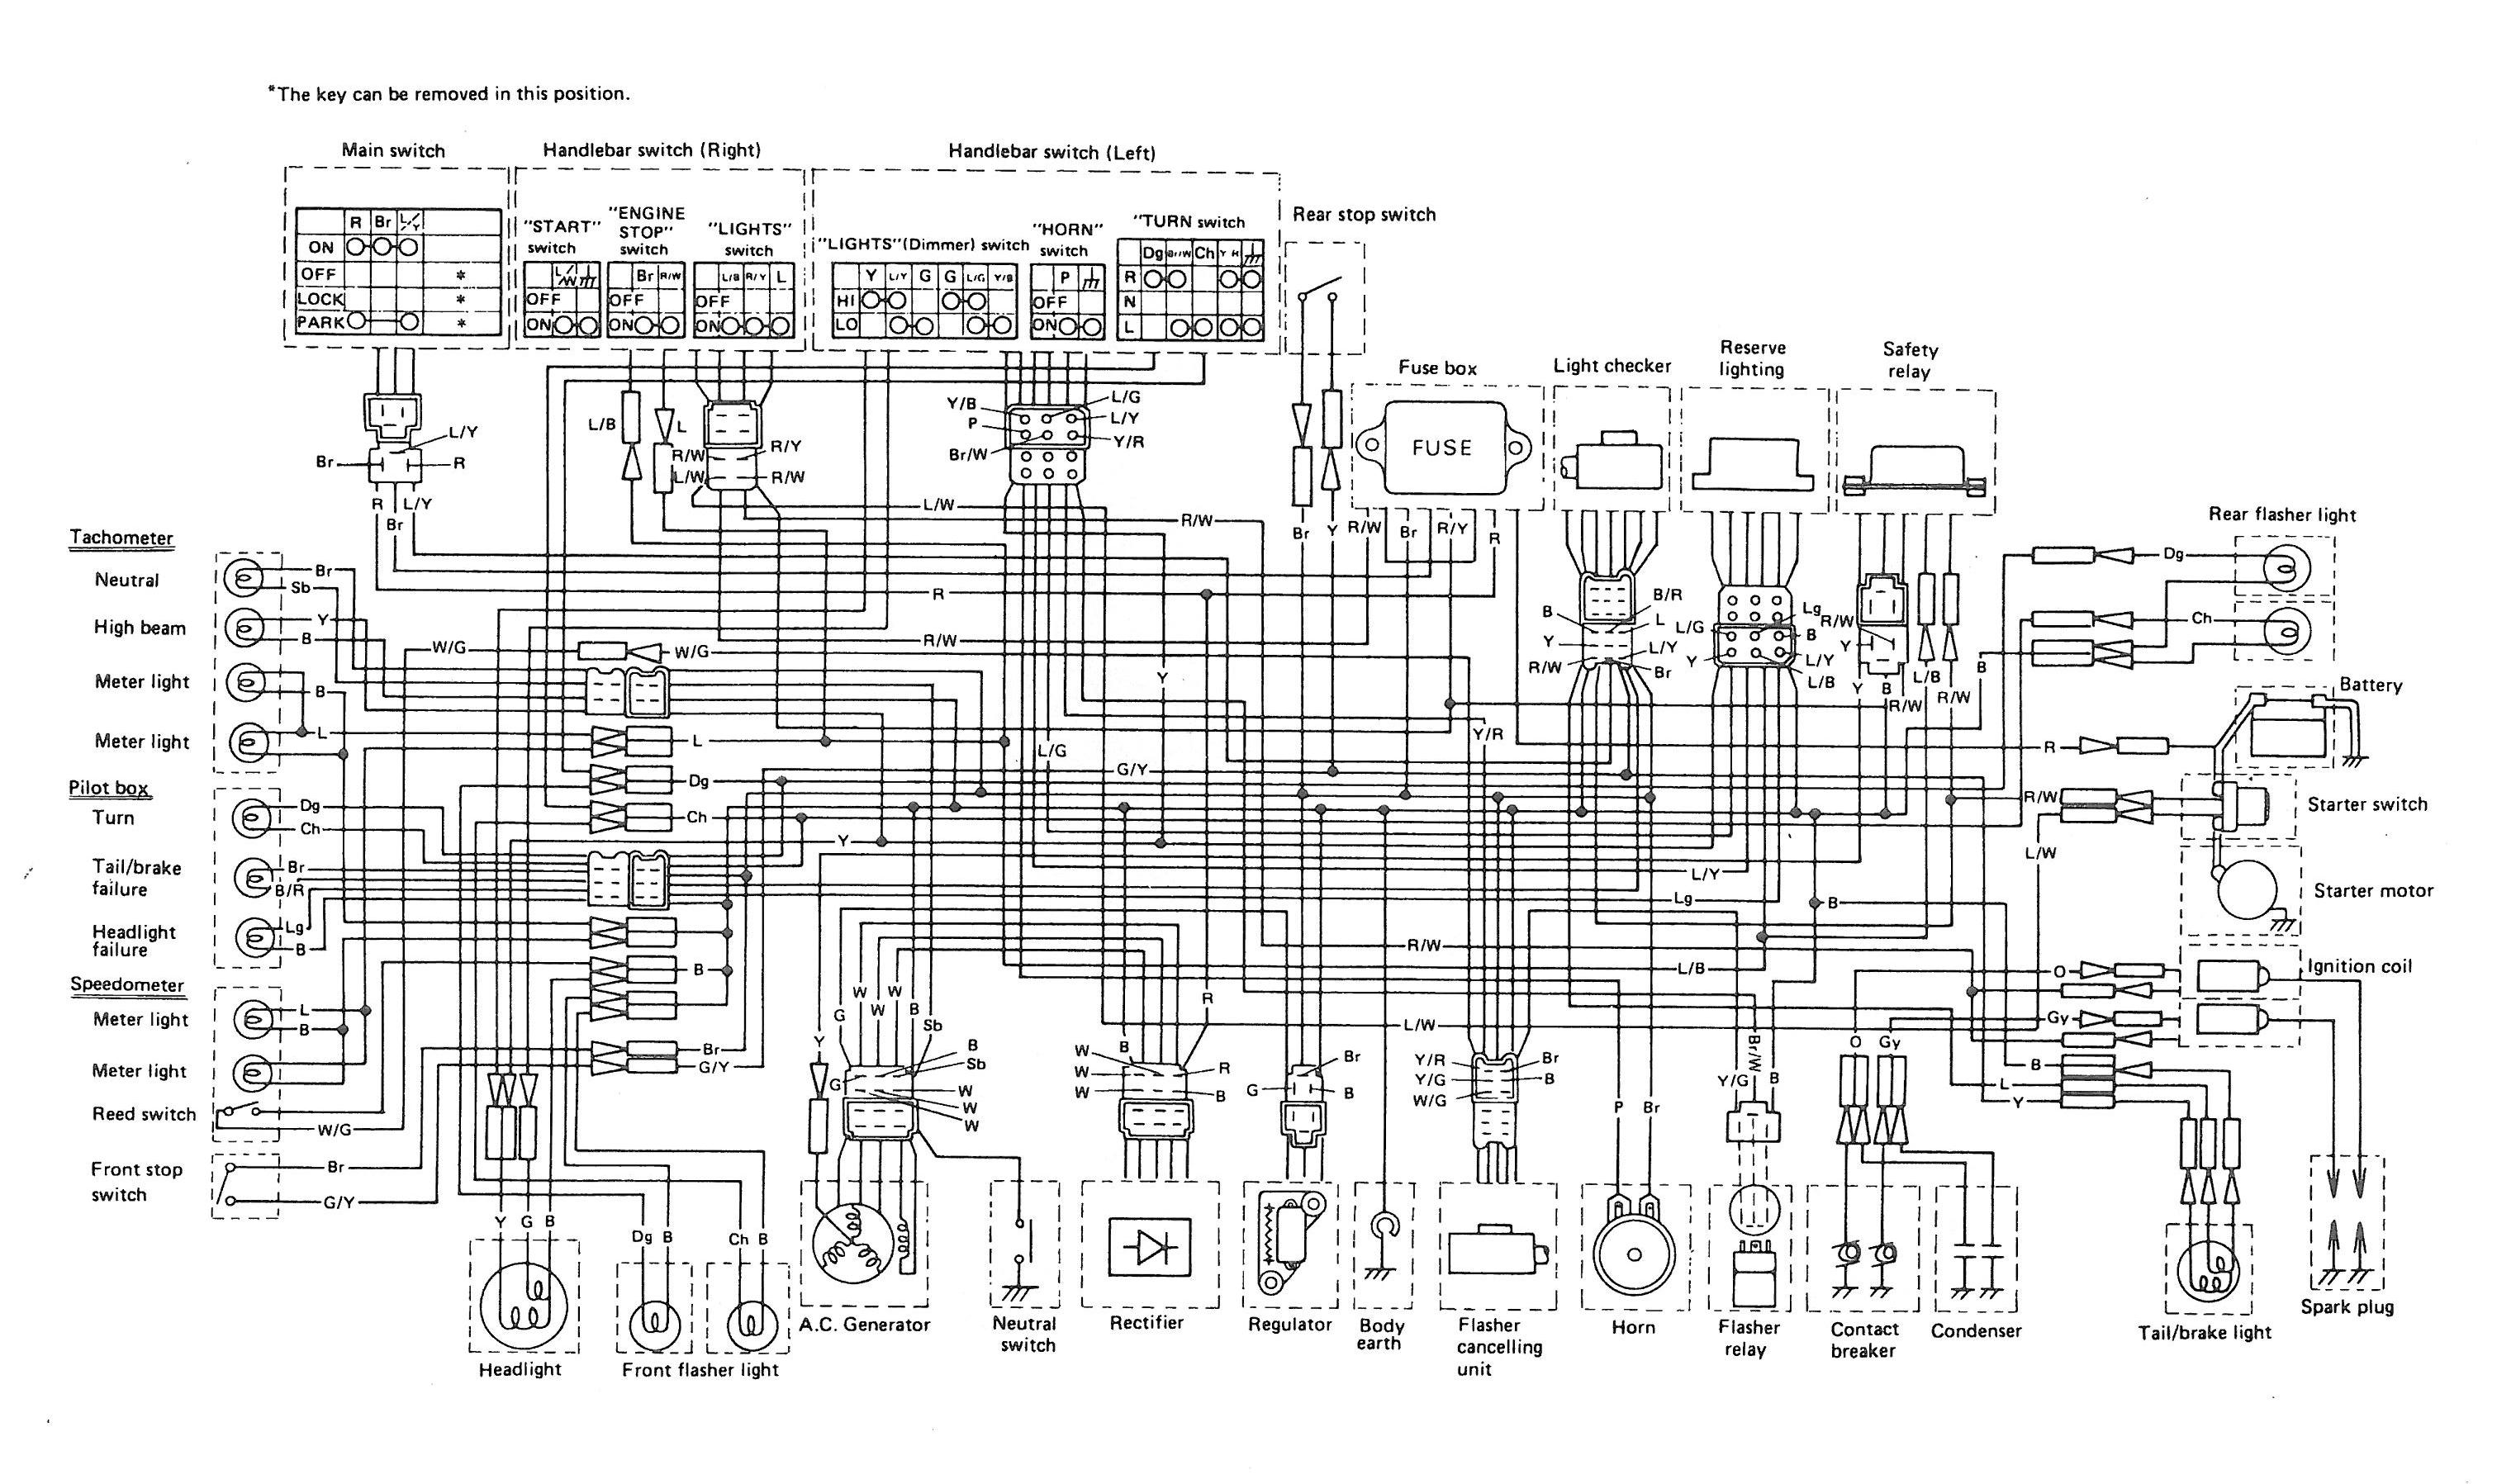 1989 Yamaha Motorcycle Wiring Diagram from wiringall.com